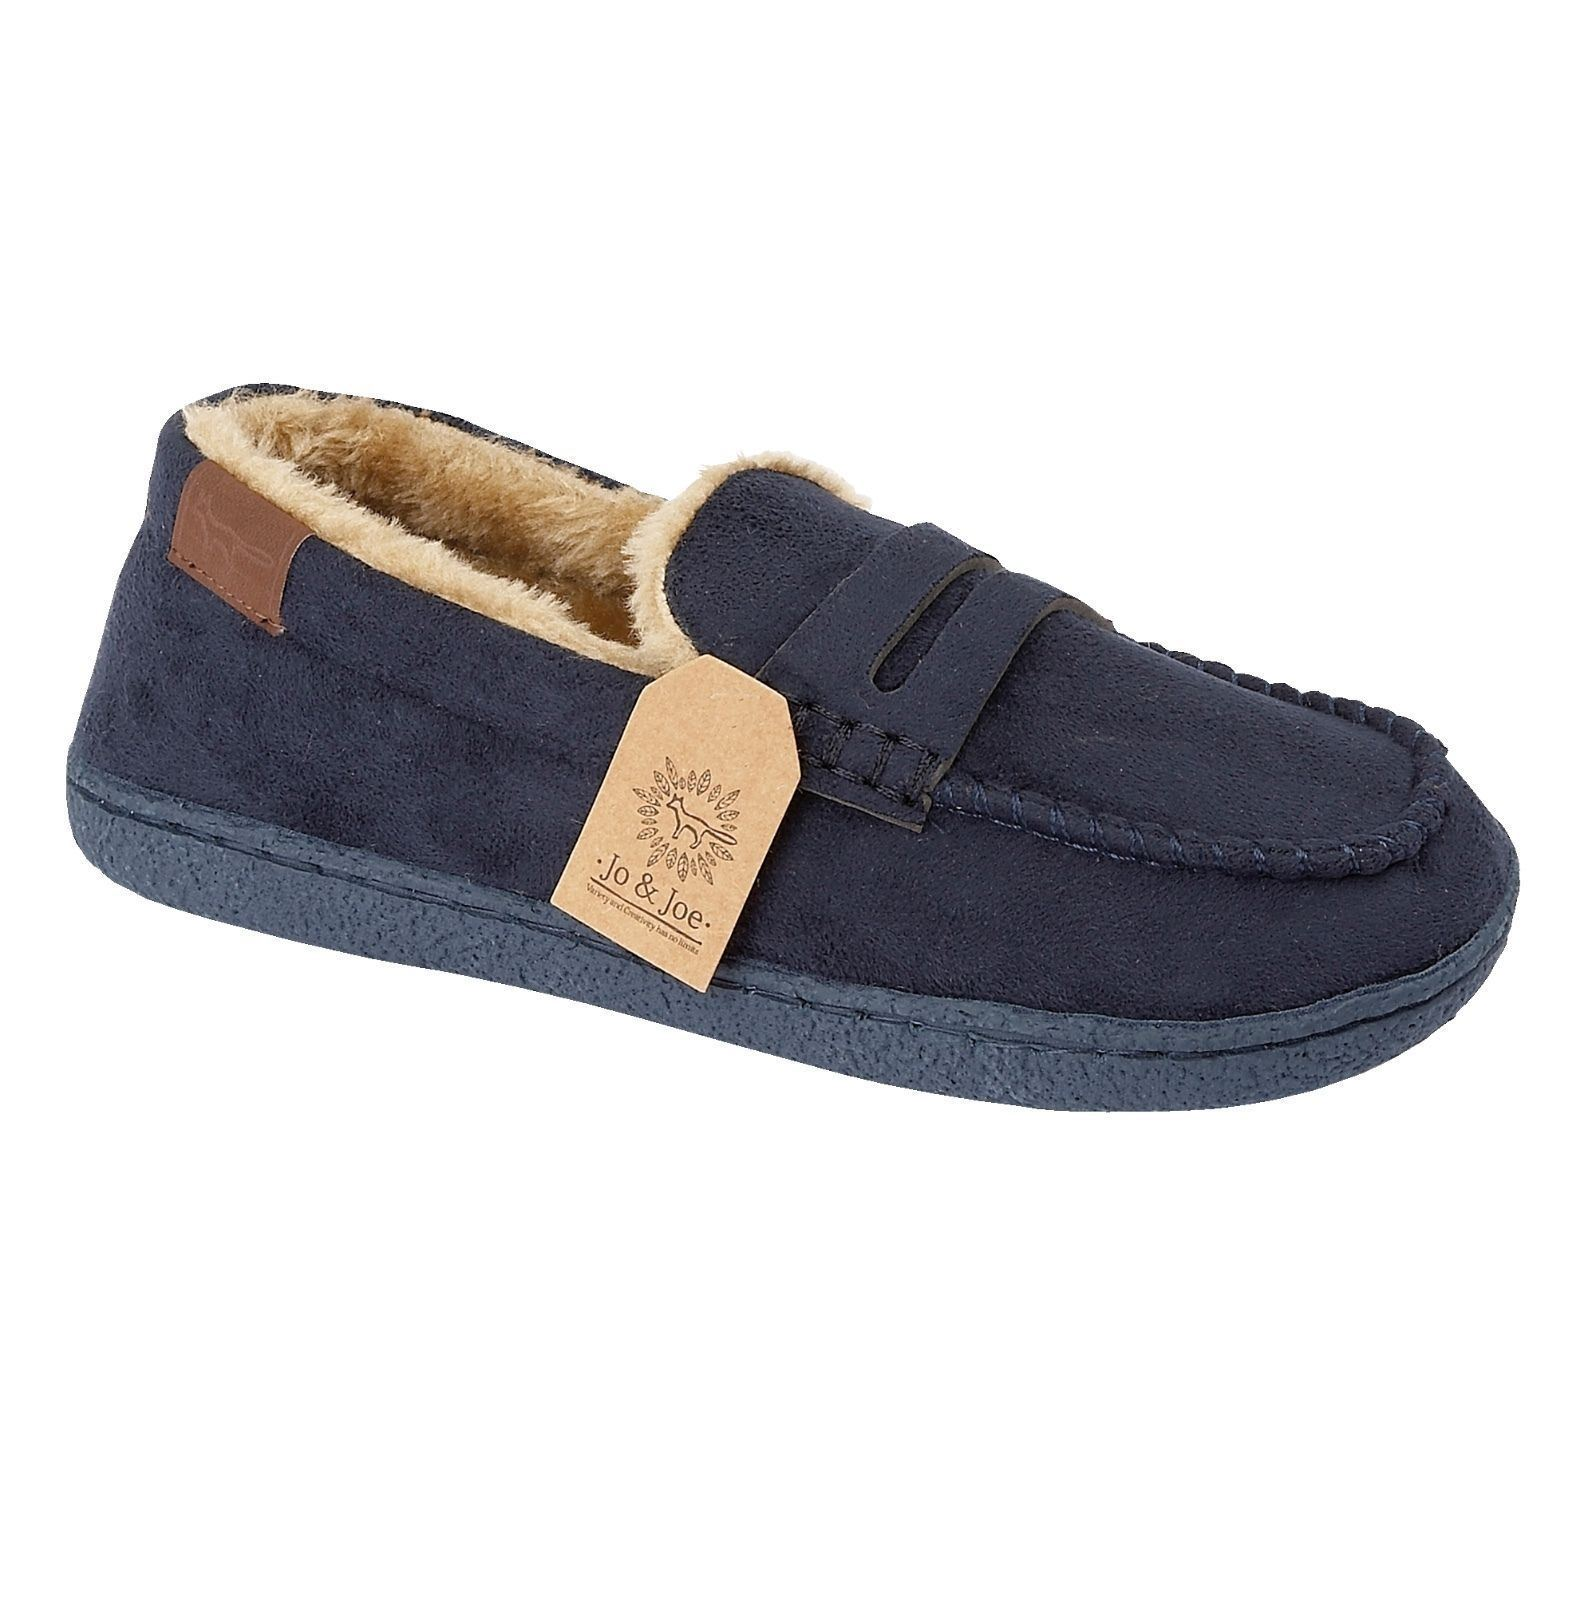 Mens-Faux-Suede-Leather-Moccasin-Slippers-Loafers-Casual-Shoes miniatura 23